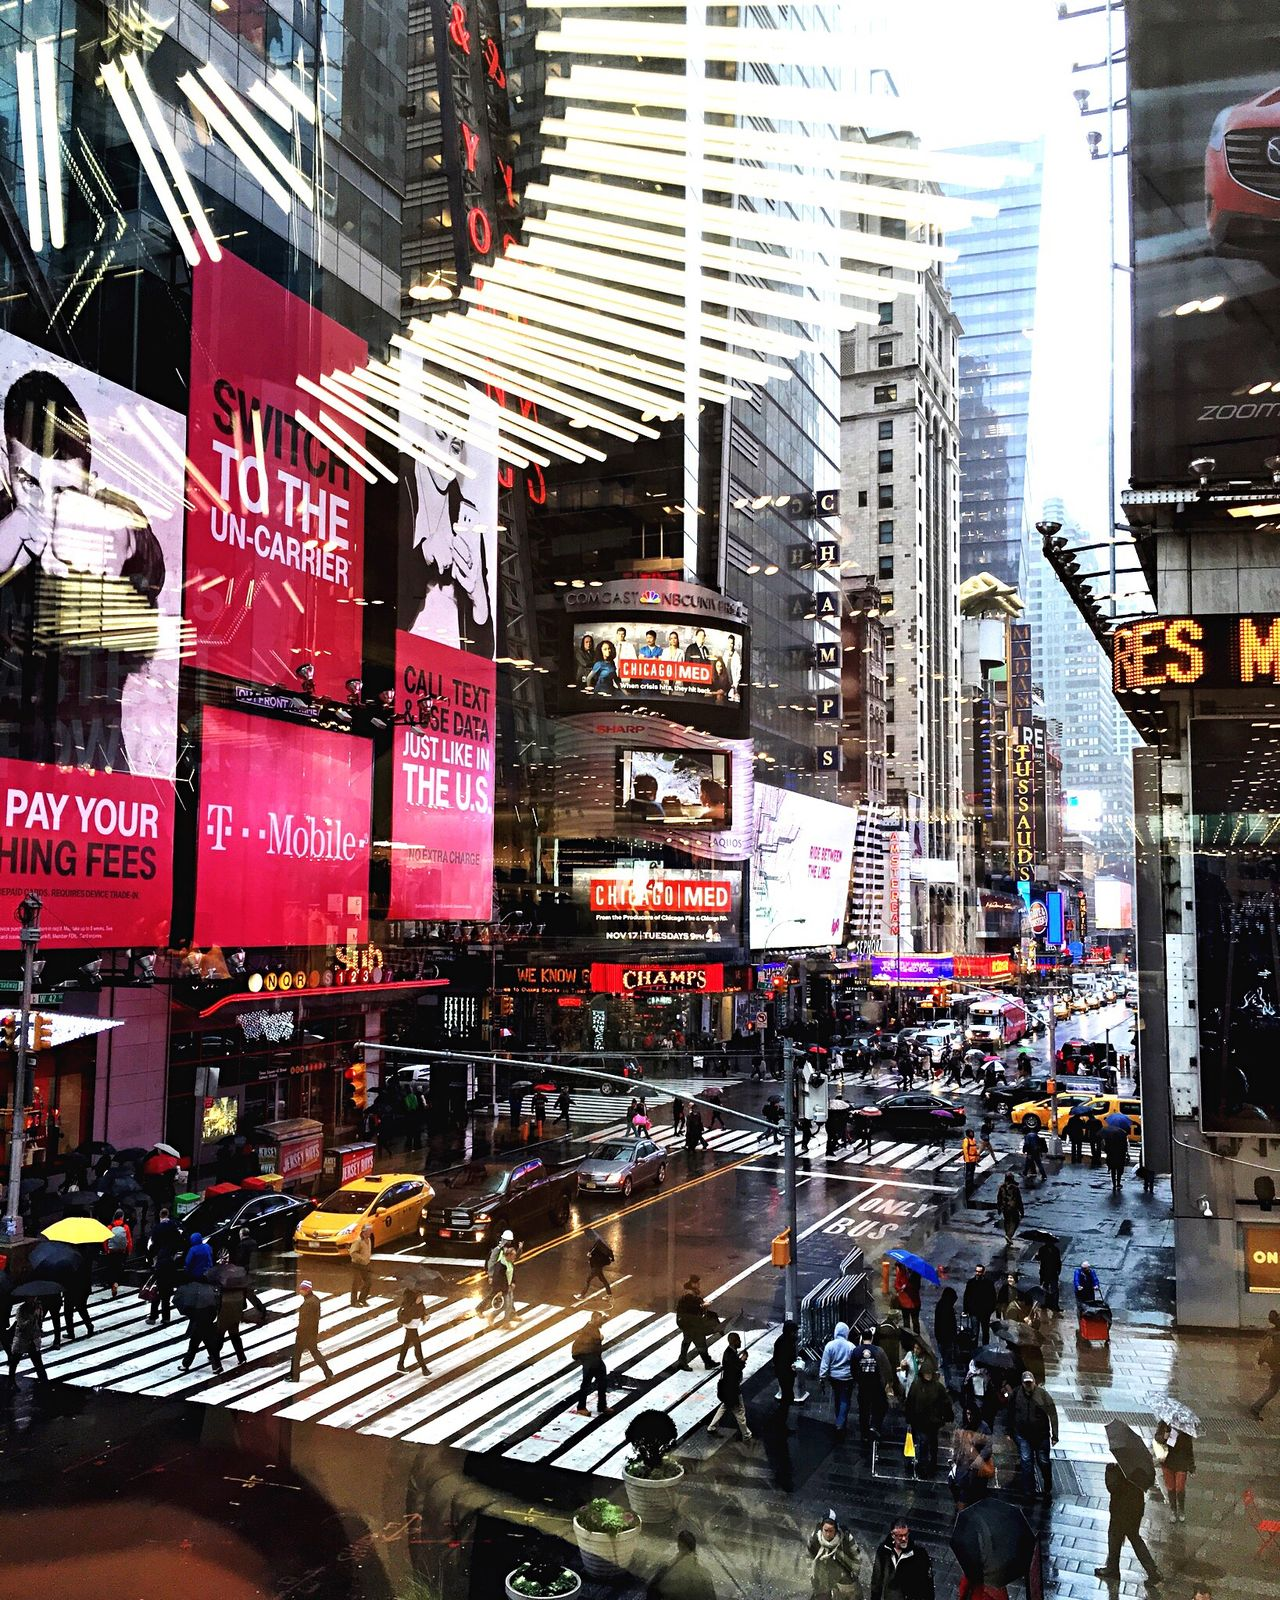 Time Square 🇺🇸✨ exciting life Check This Out Hello World Taking Photos Enjoying Life Hanging Out Love It Holidays Ilovenewyork New York Timesquare Timesquarenyc Manhattan Buildings City Cityscape City Life Crowded Lights Neonlights Skycraper Street Streetphotography Streetphoto_color Urban Urban Lifestyle